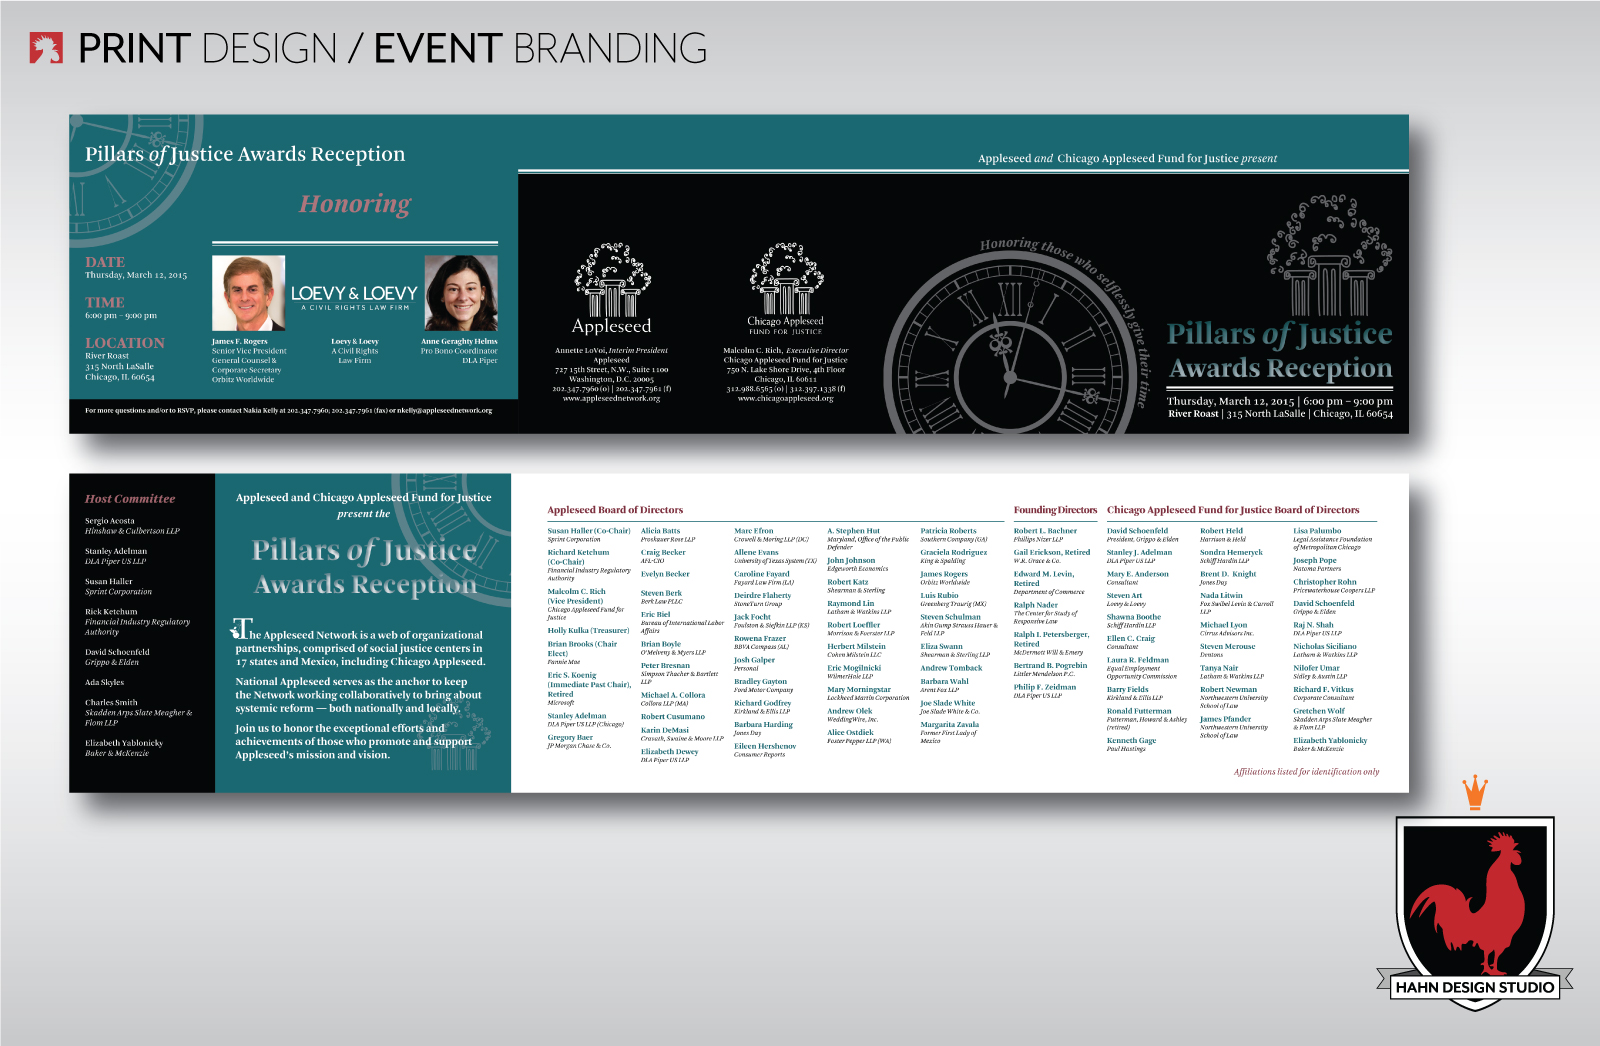 Event Branding, graphic and print design for the 2015 Chicago Appleseed Pillars of Justice Awards Reception